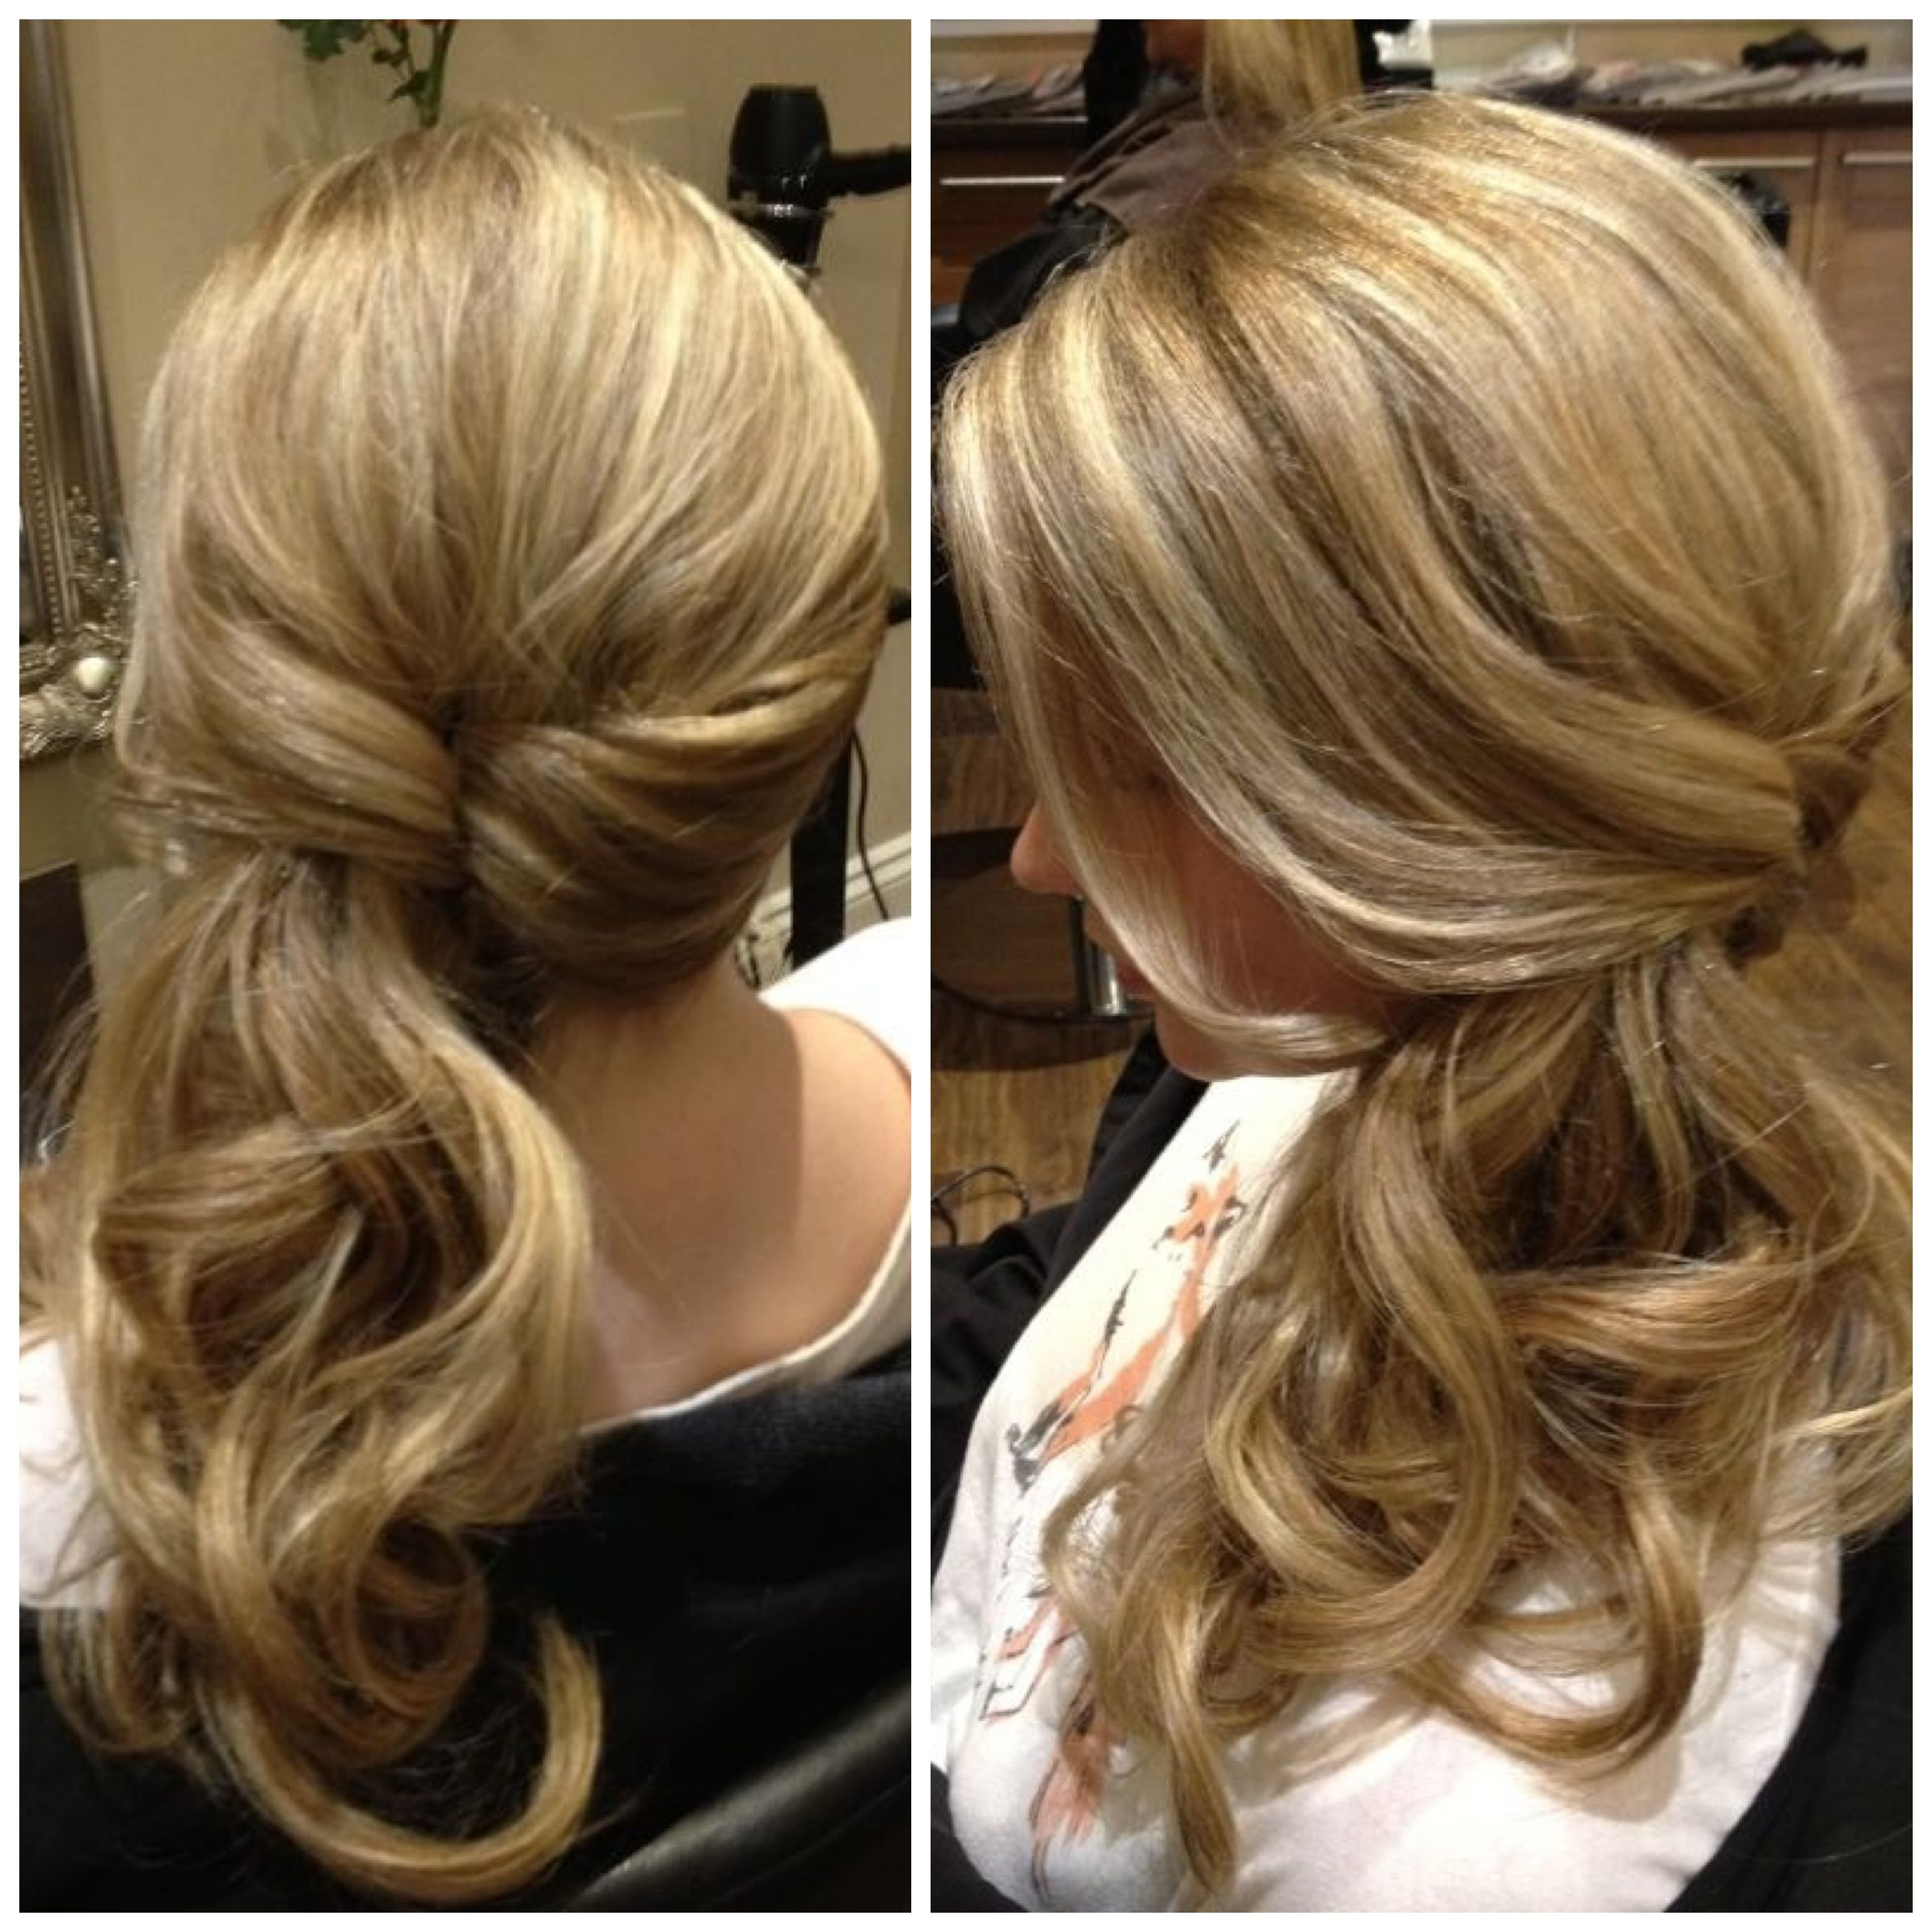 Pinreverence On Miss Child Beauty Pageant Ideas In 2019 Throughout Most Popular Low Curly Side Ponytail Hairstyles For Prom (View 4 of 20)